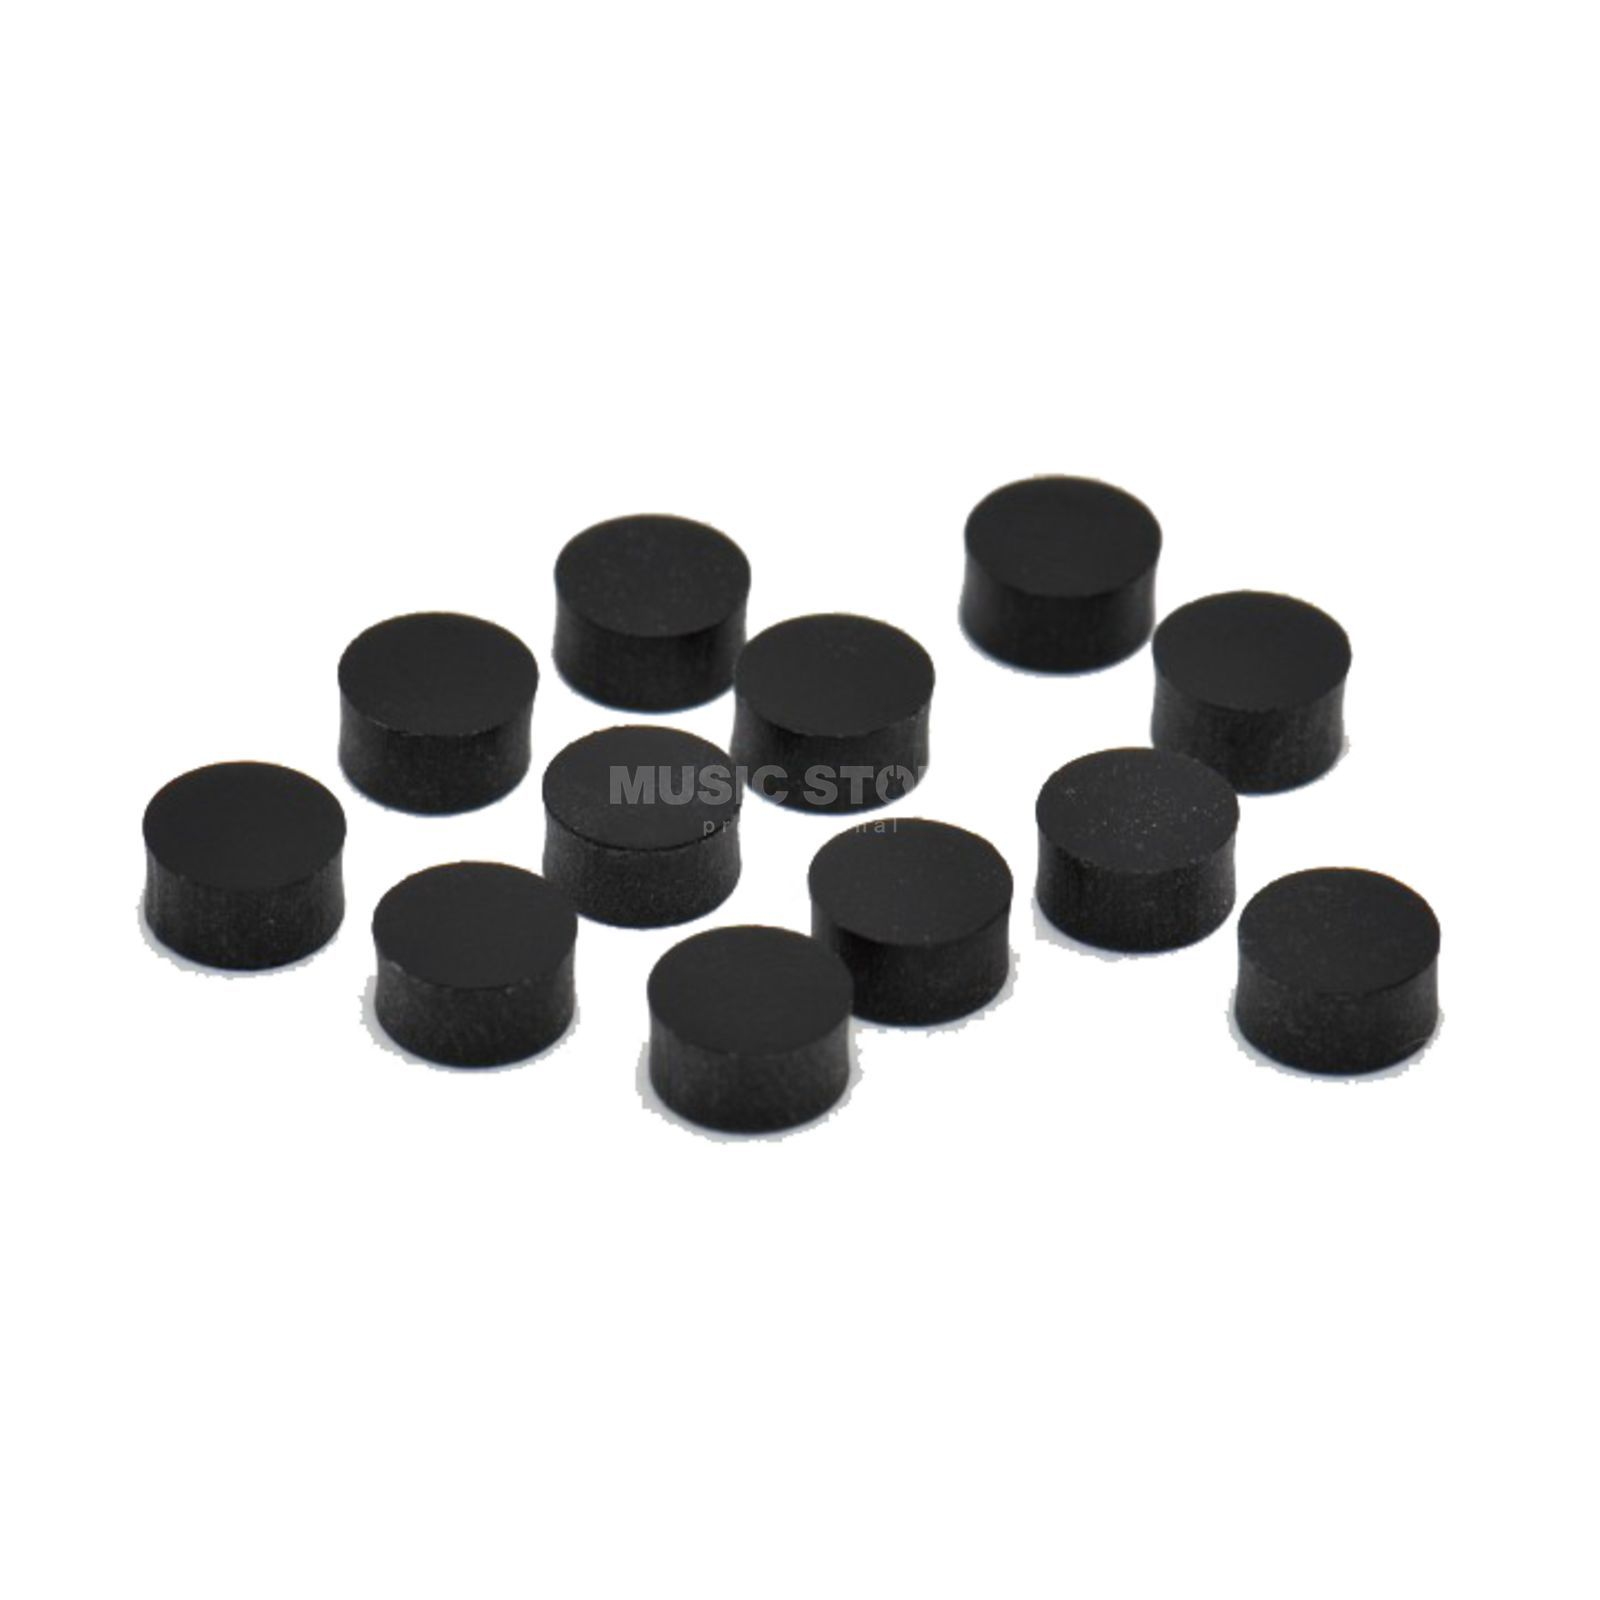 Göldo Dot 6mm Black 12-Pack  Изображение товара